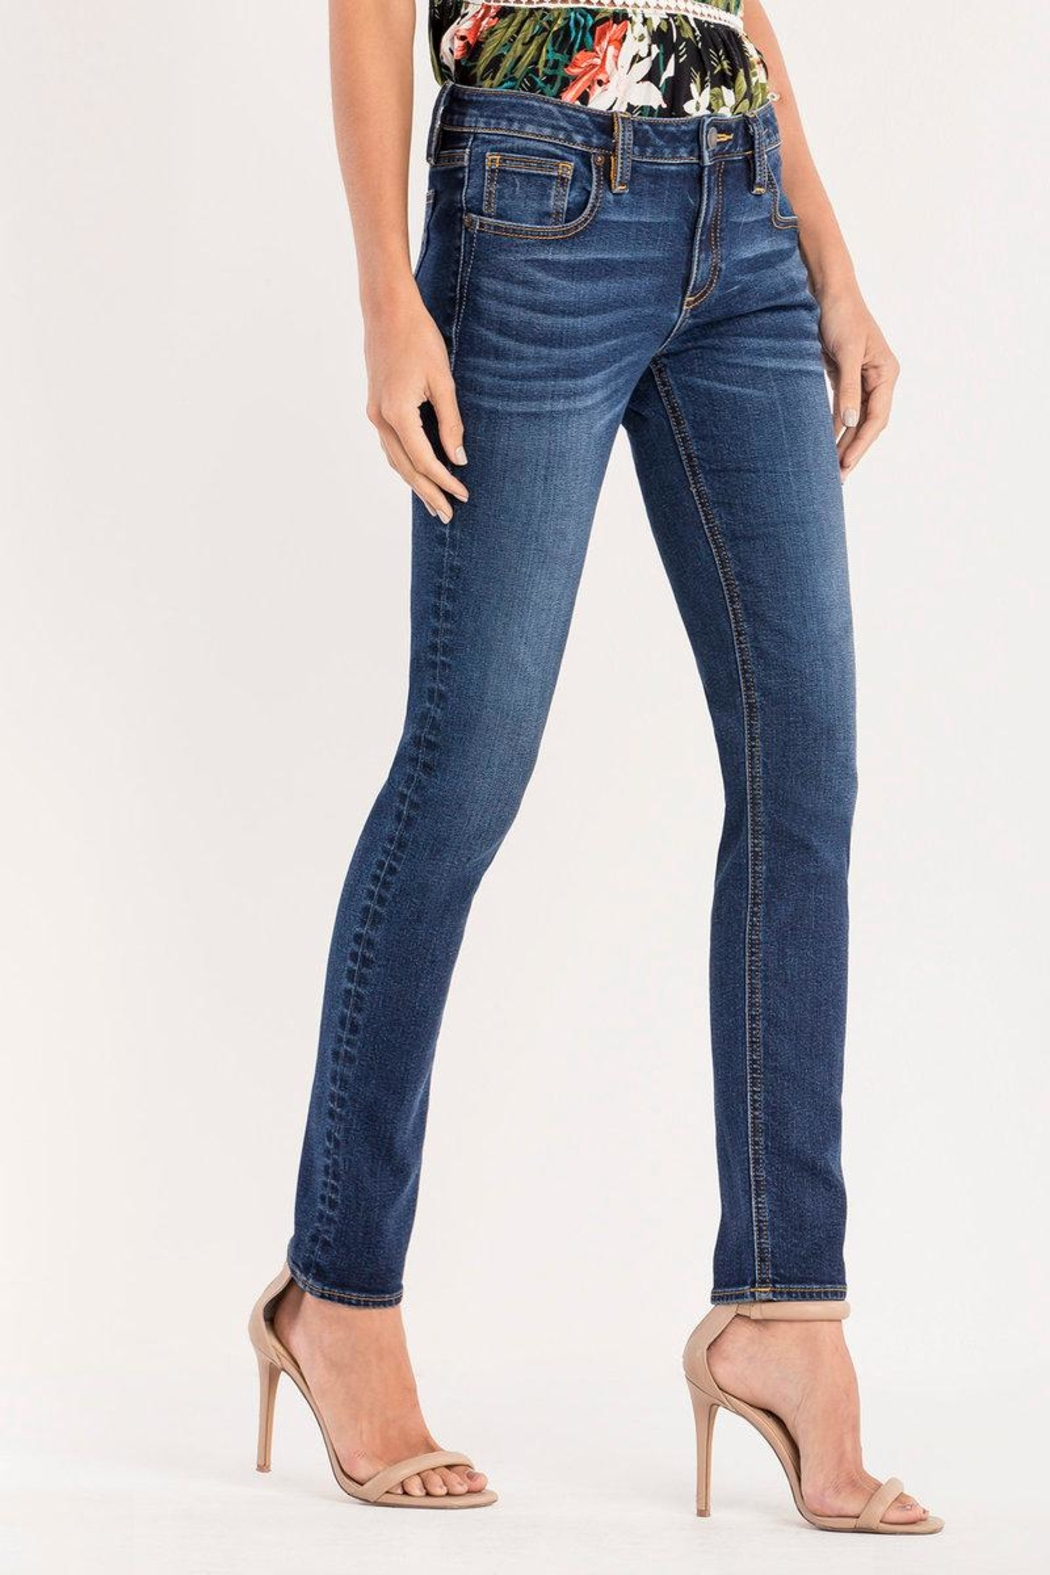 Miss Me Essential Midrise Skinny Jean - Side Cropped Image